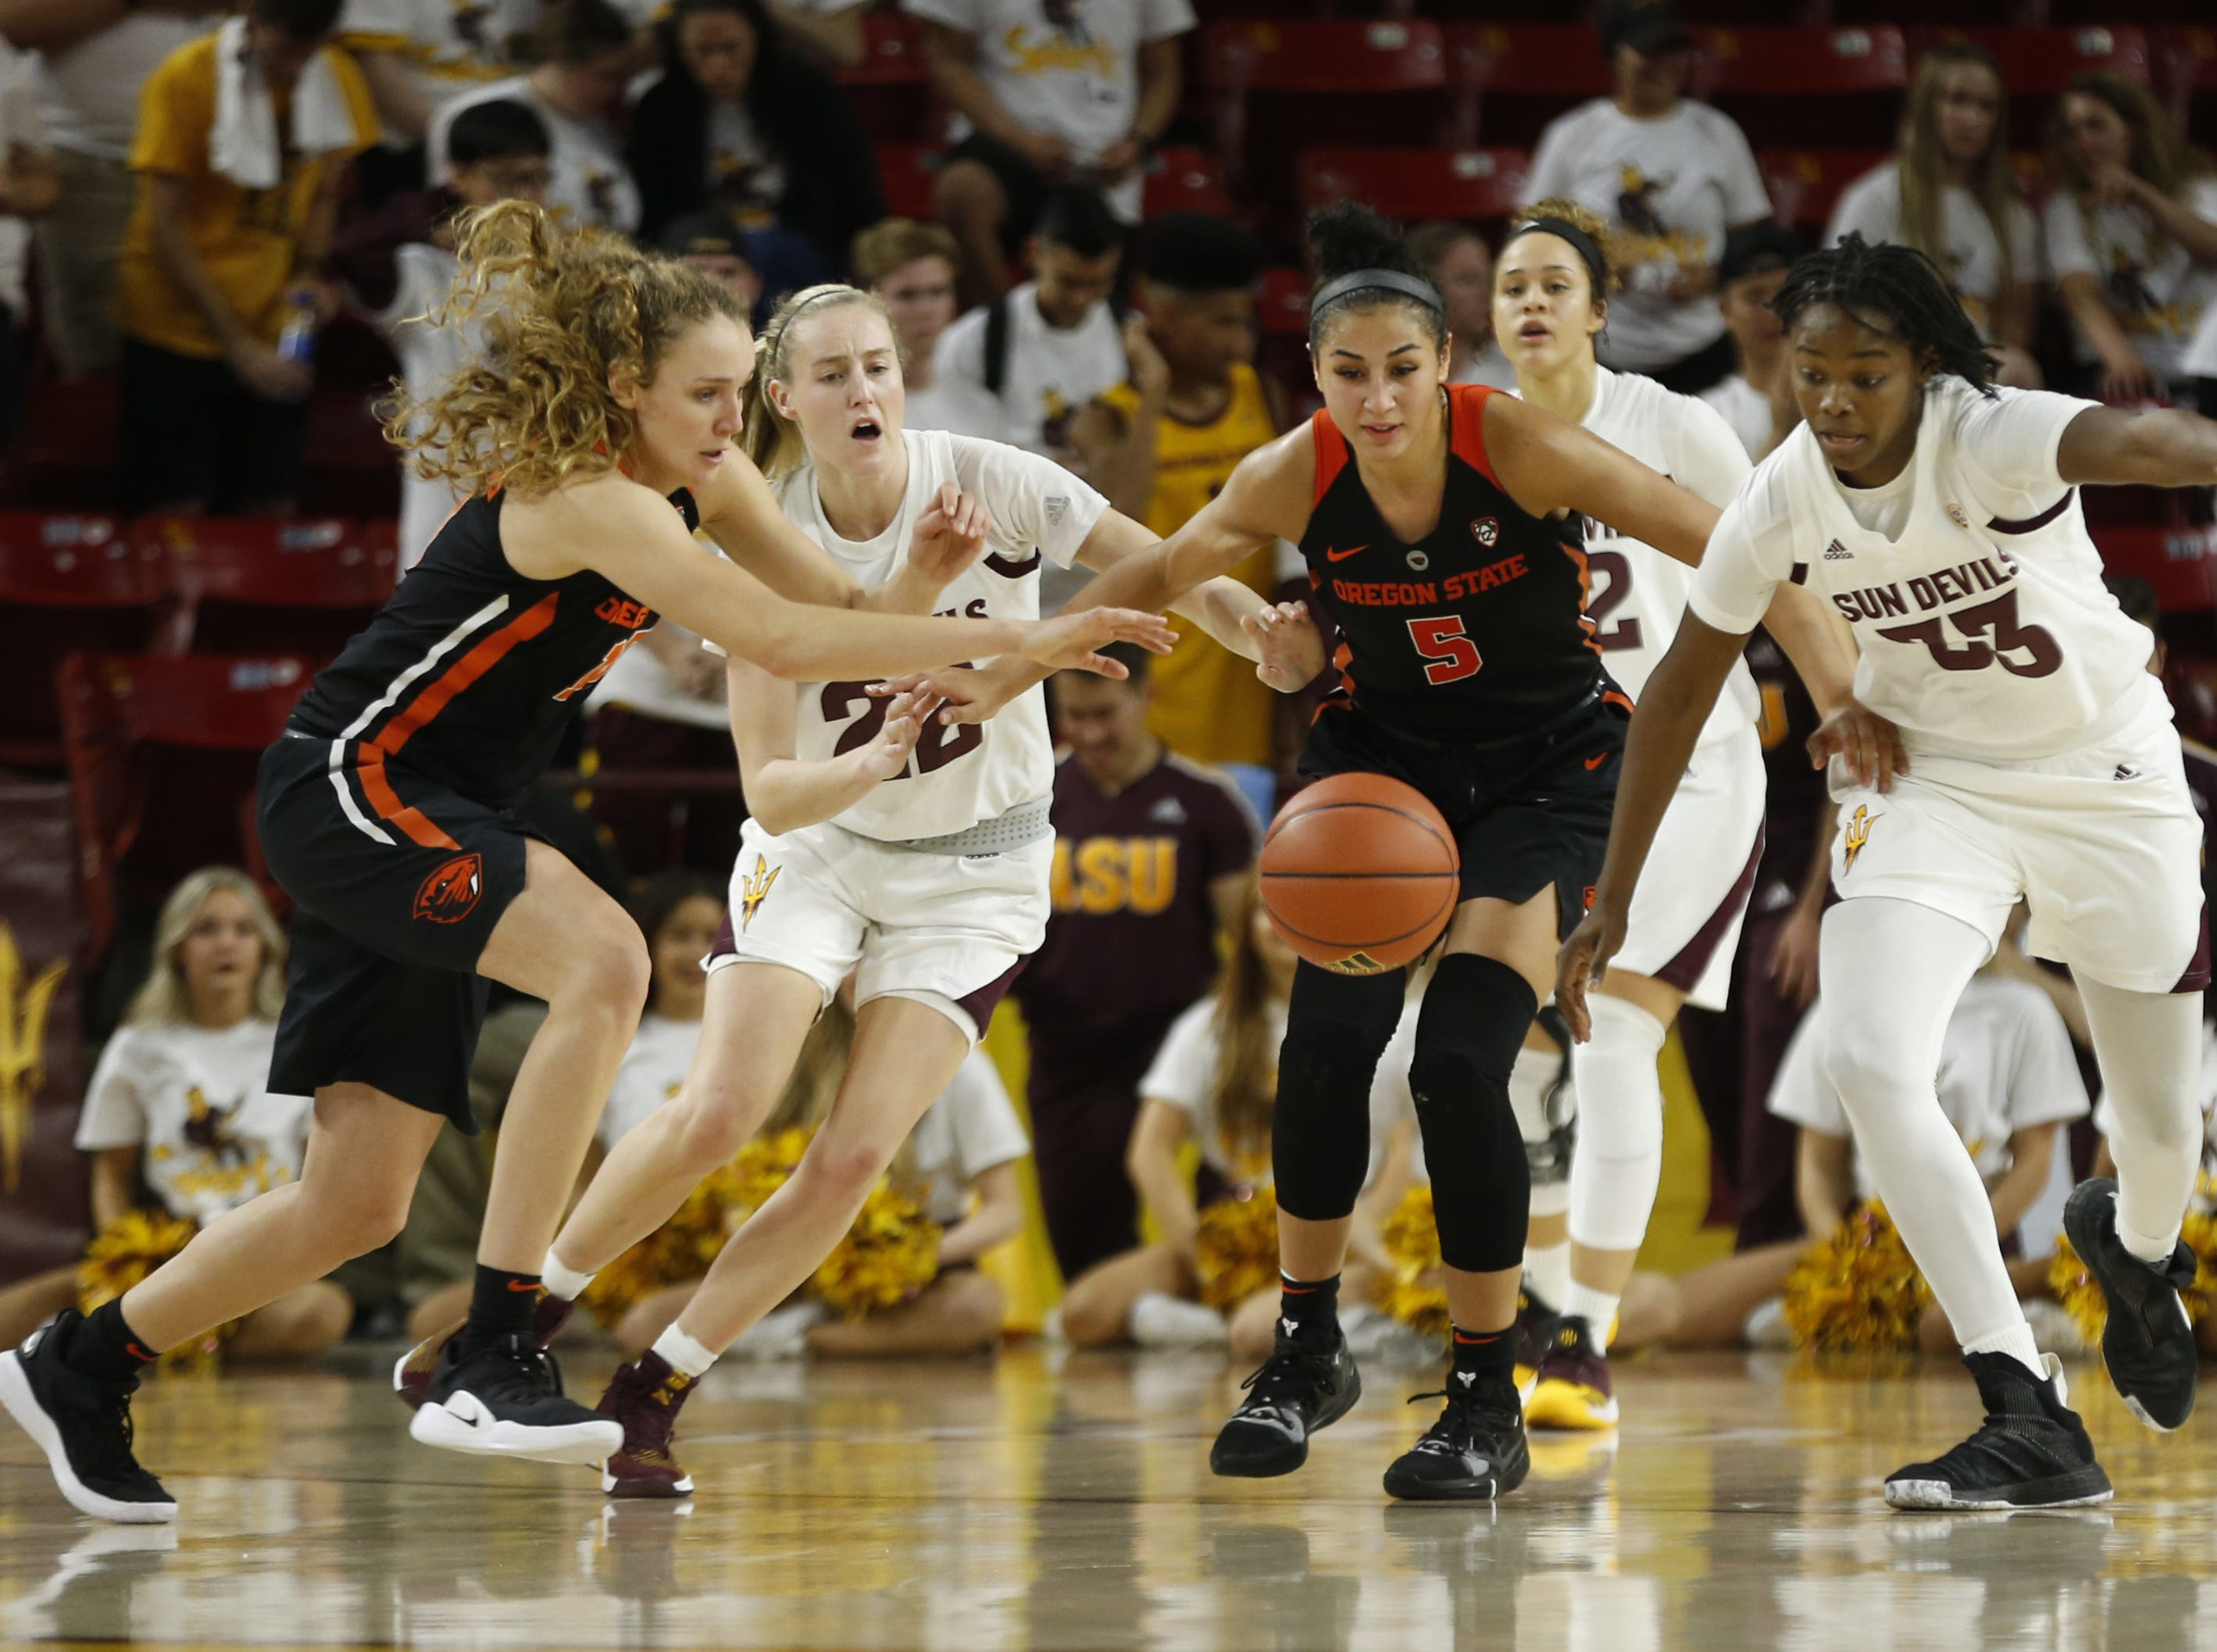 Oregon State's Katie McWilliams (10) and Taya Corosdale (5) scramble for a loose ball against ASU's Charnea Johnson-Chapman (33) and Courtney Ekmark (22) during the second half at Wells Fargo Arena in Tempe, Ariz. on March 1, 2019.